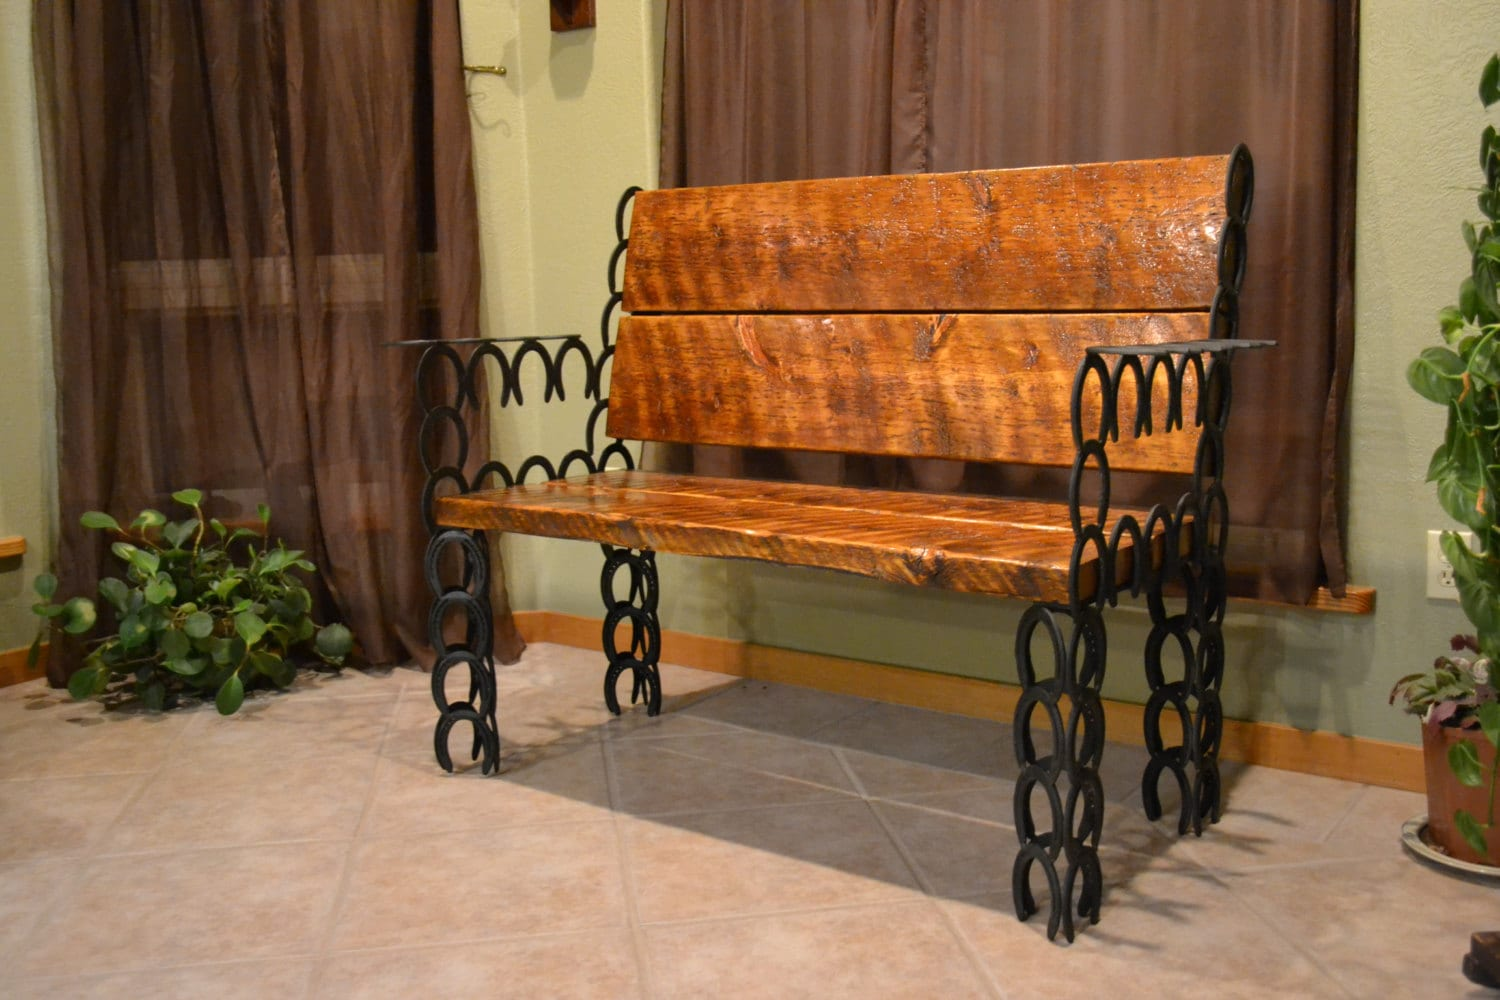 Horseshoe bench bench horseshoe art home decor western for Home decorators bench